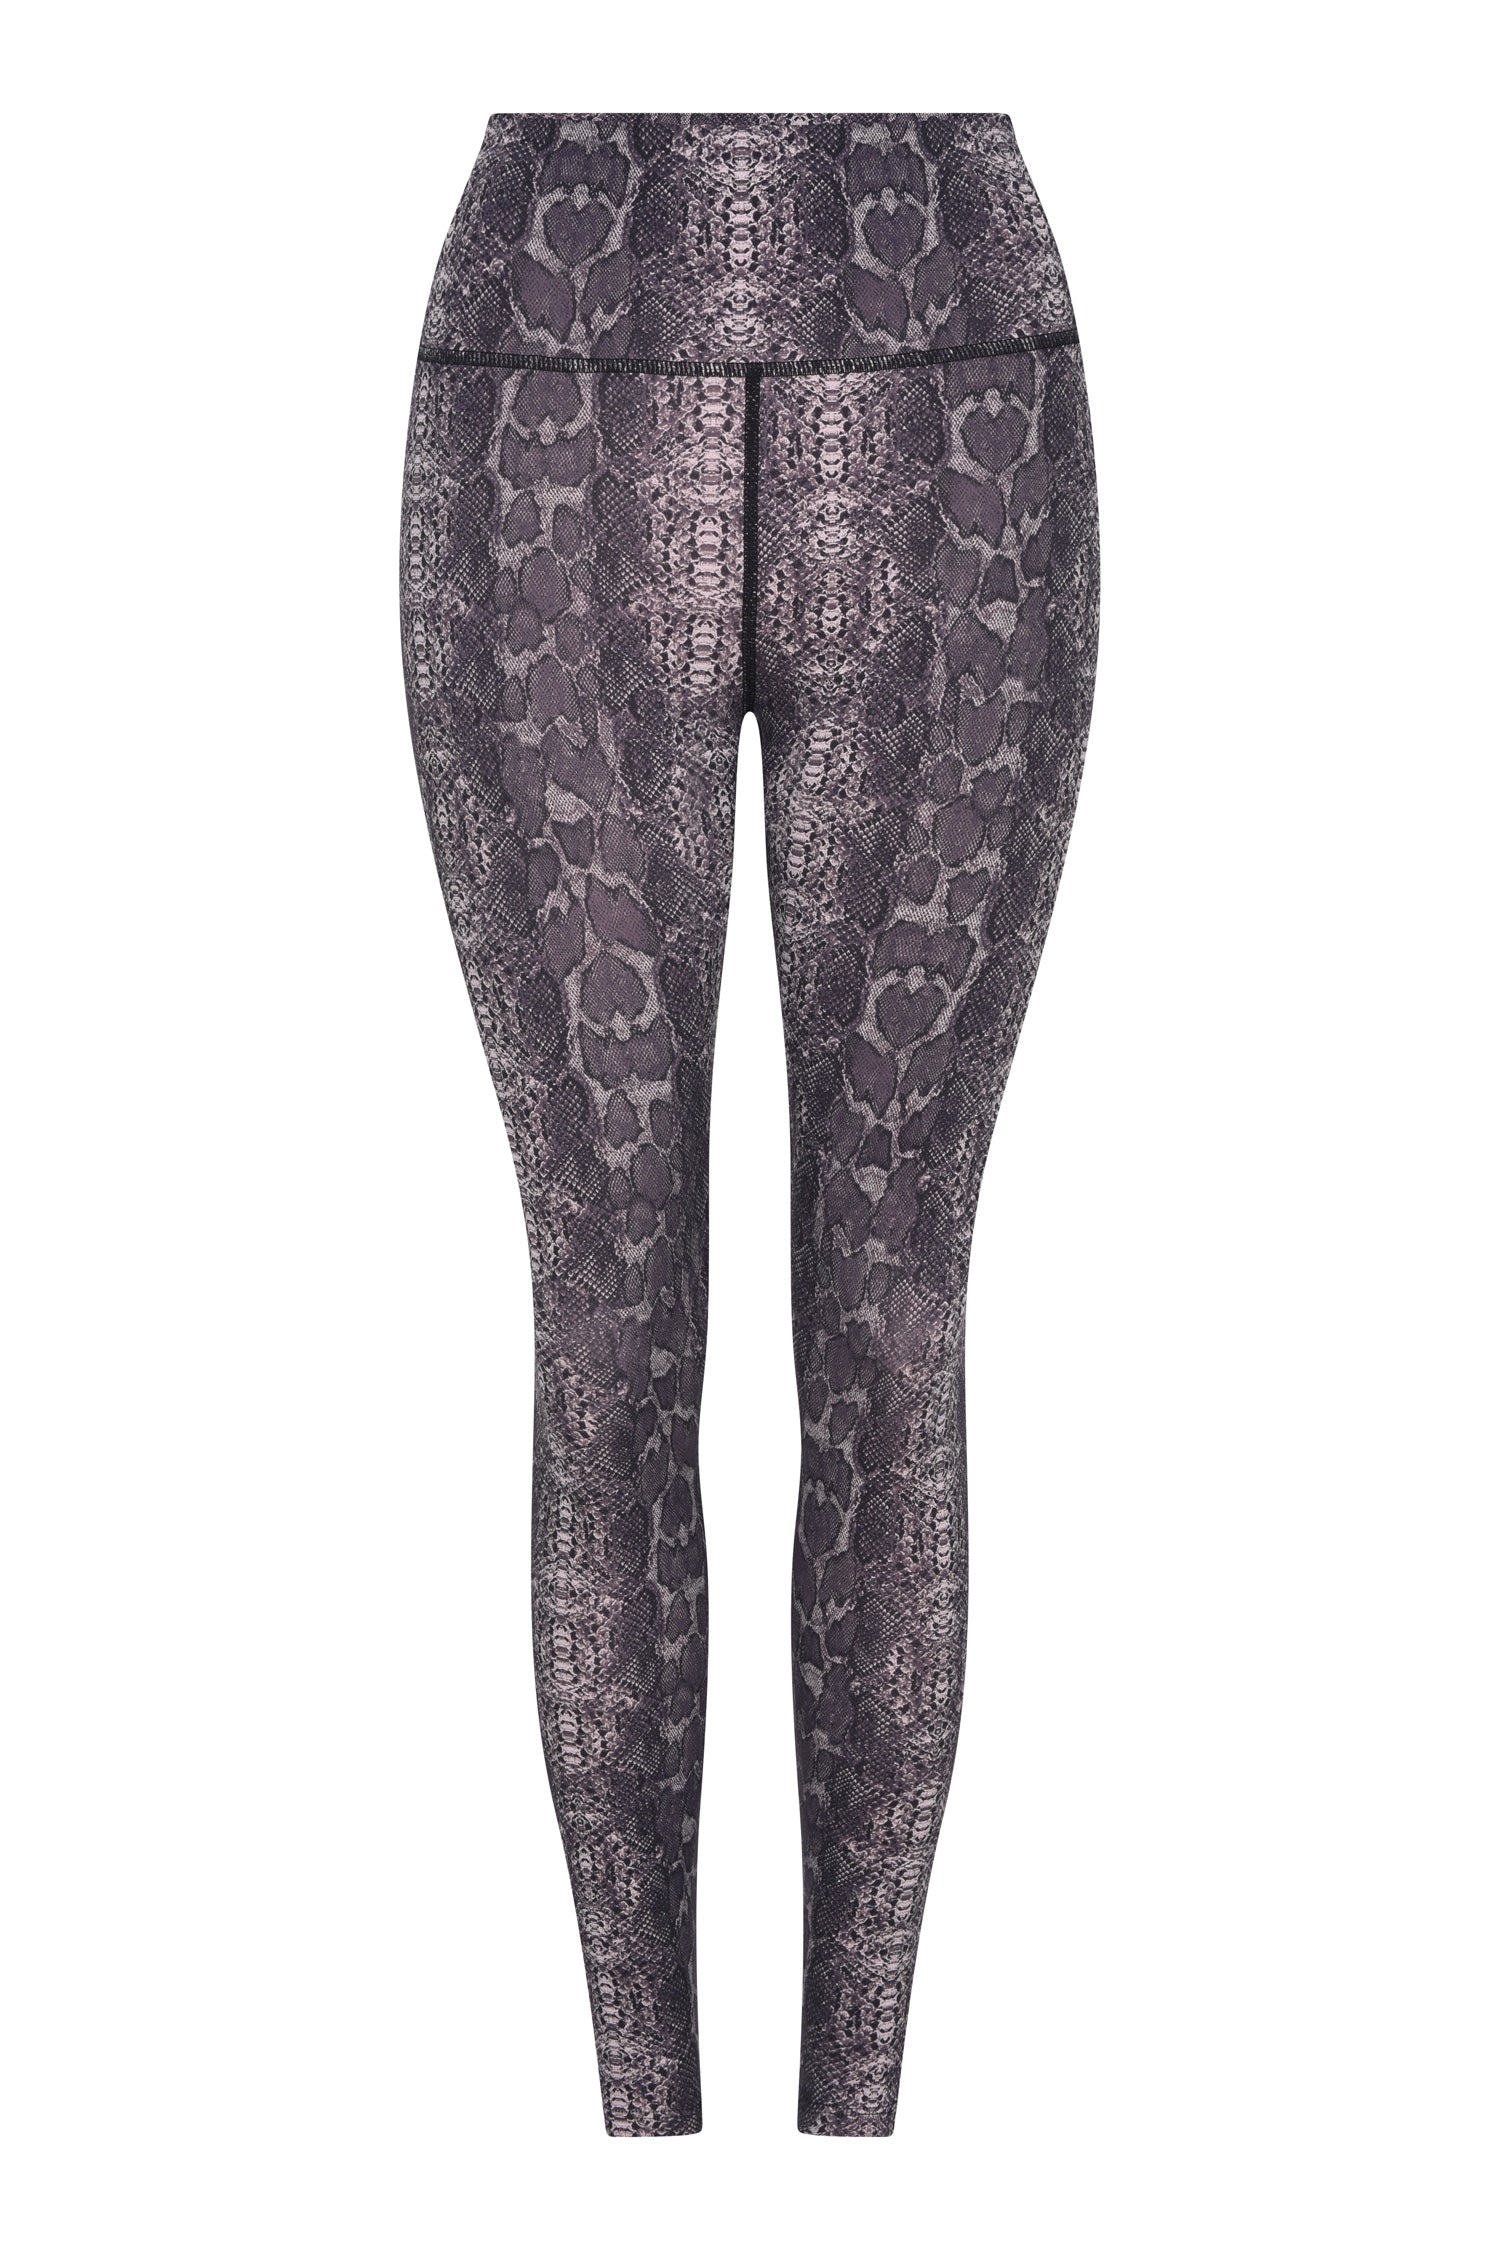 Luna Legging | Blush Boa